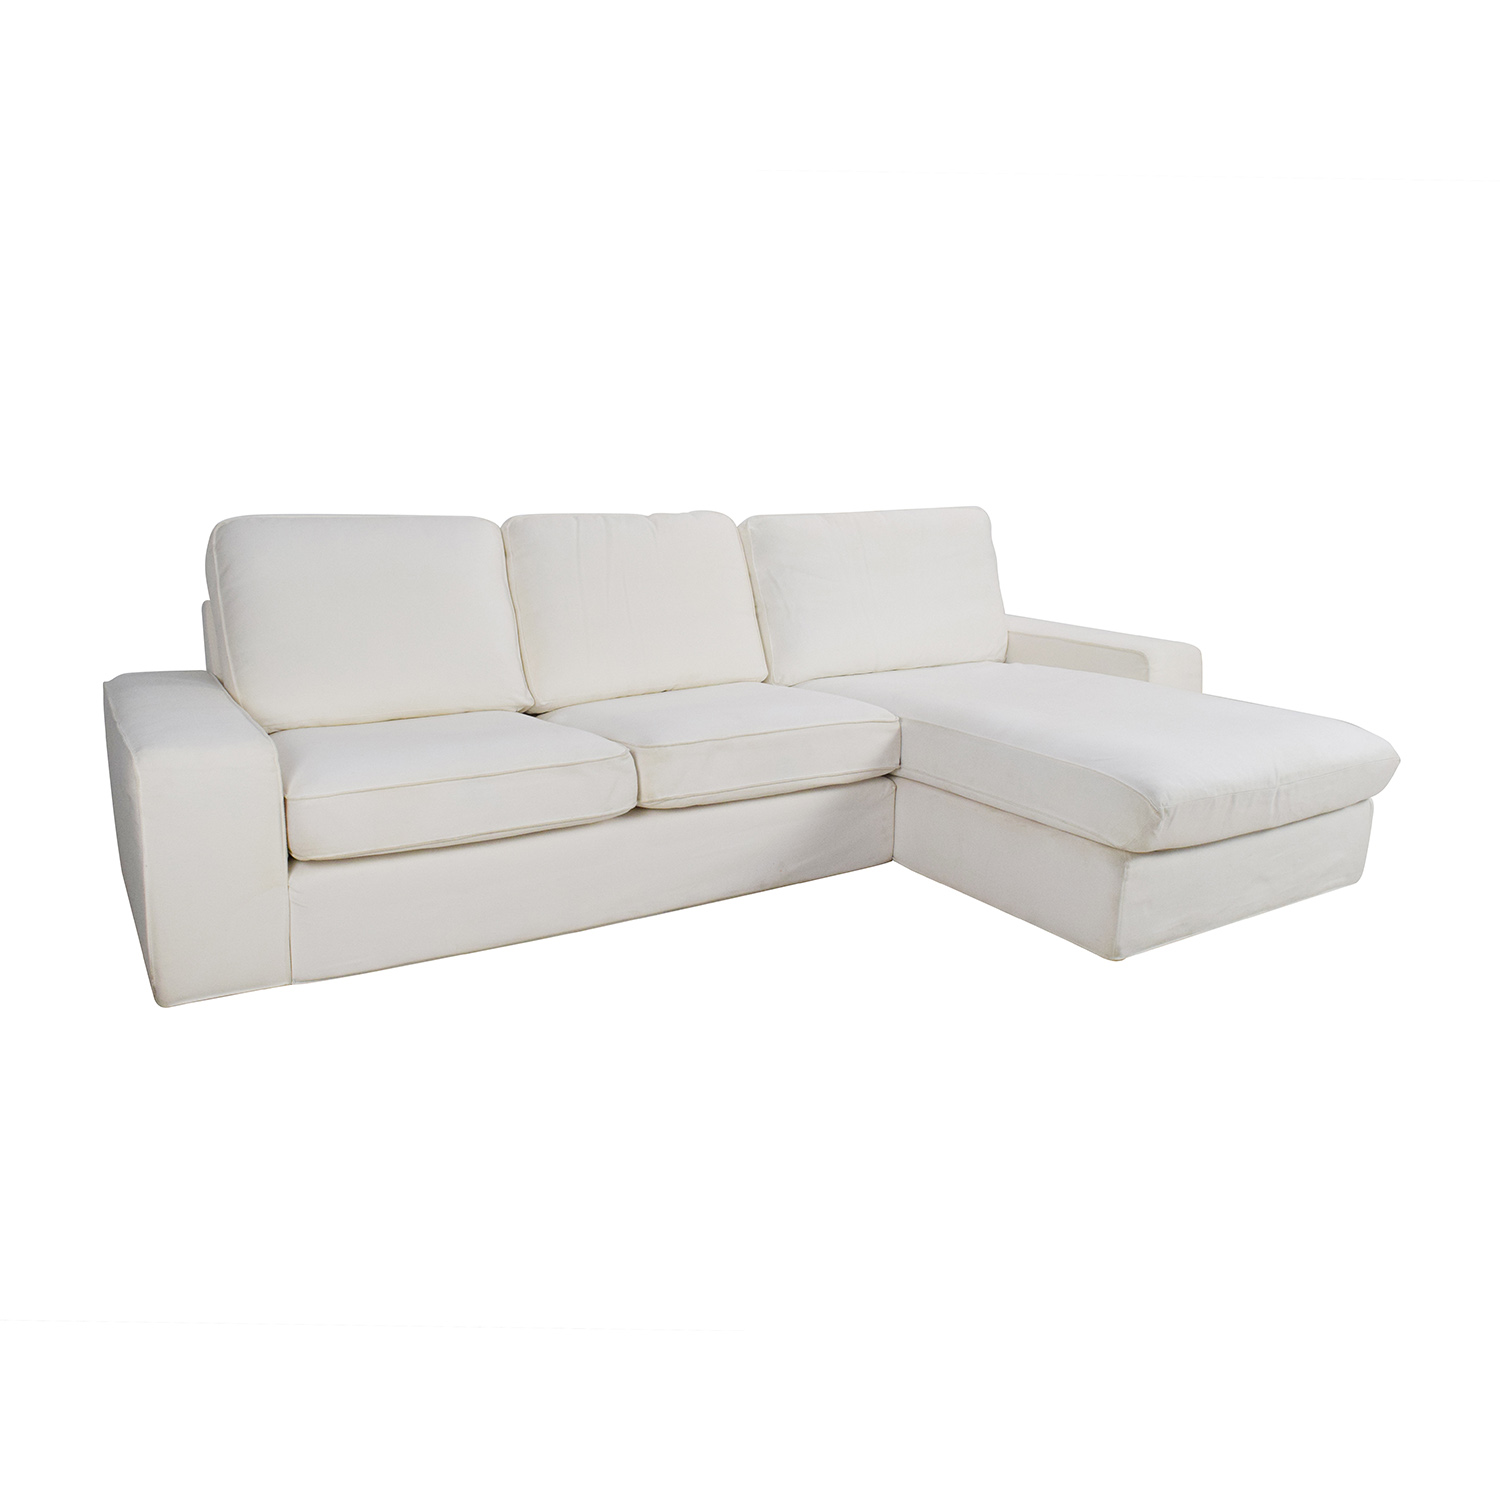 69 off ikea ikea kivik sofa and chaise sofas